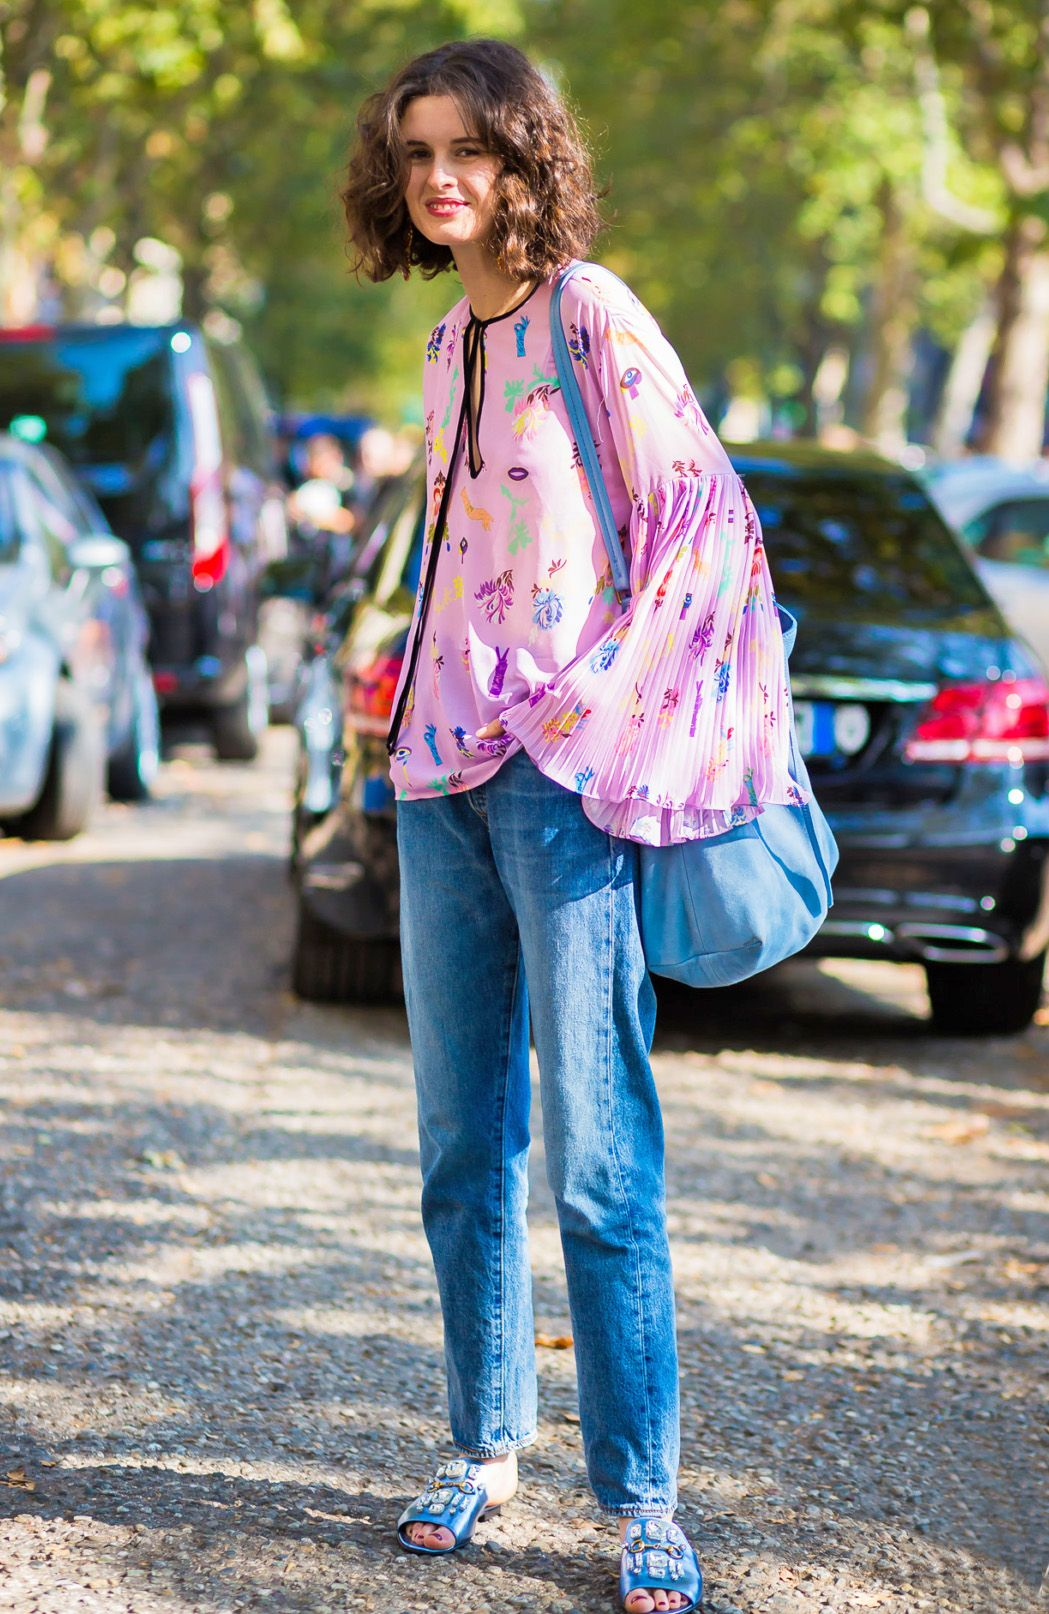 Not sure how to wear jeans in the summer? Pair the denim with a lightweight,  billowy blouse.